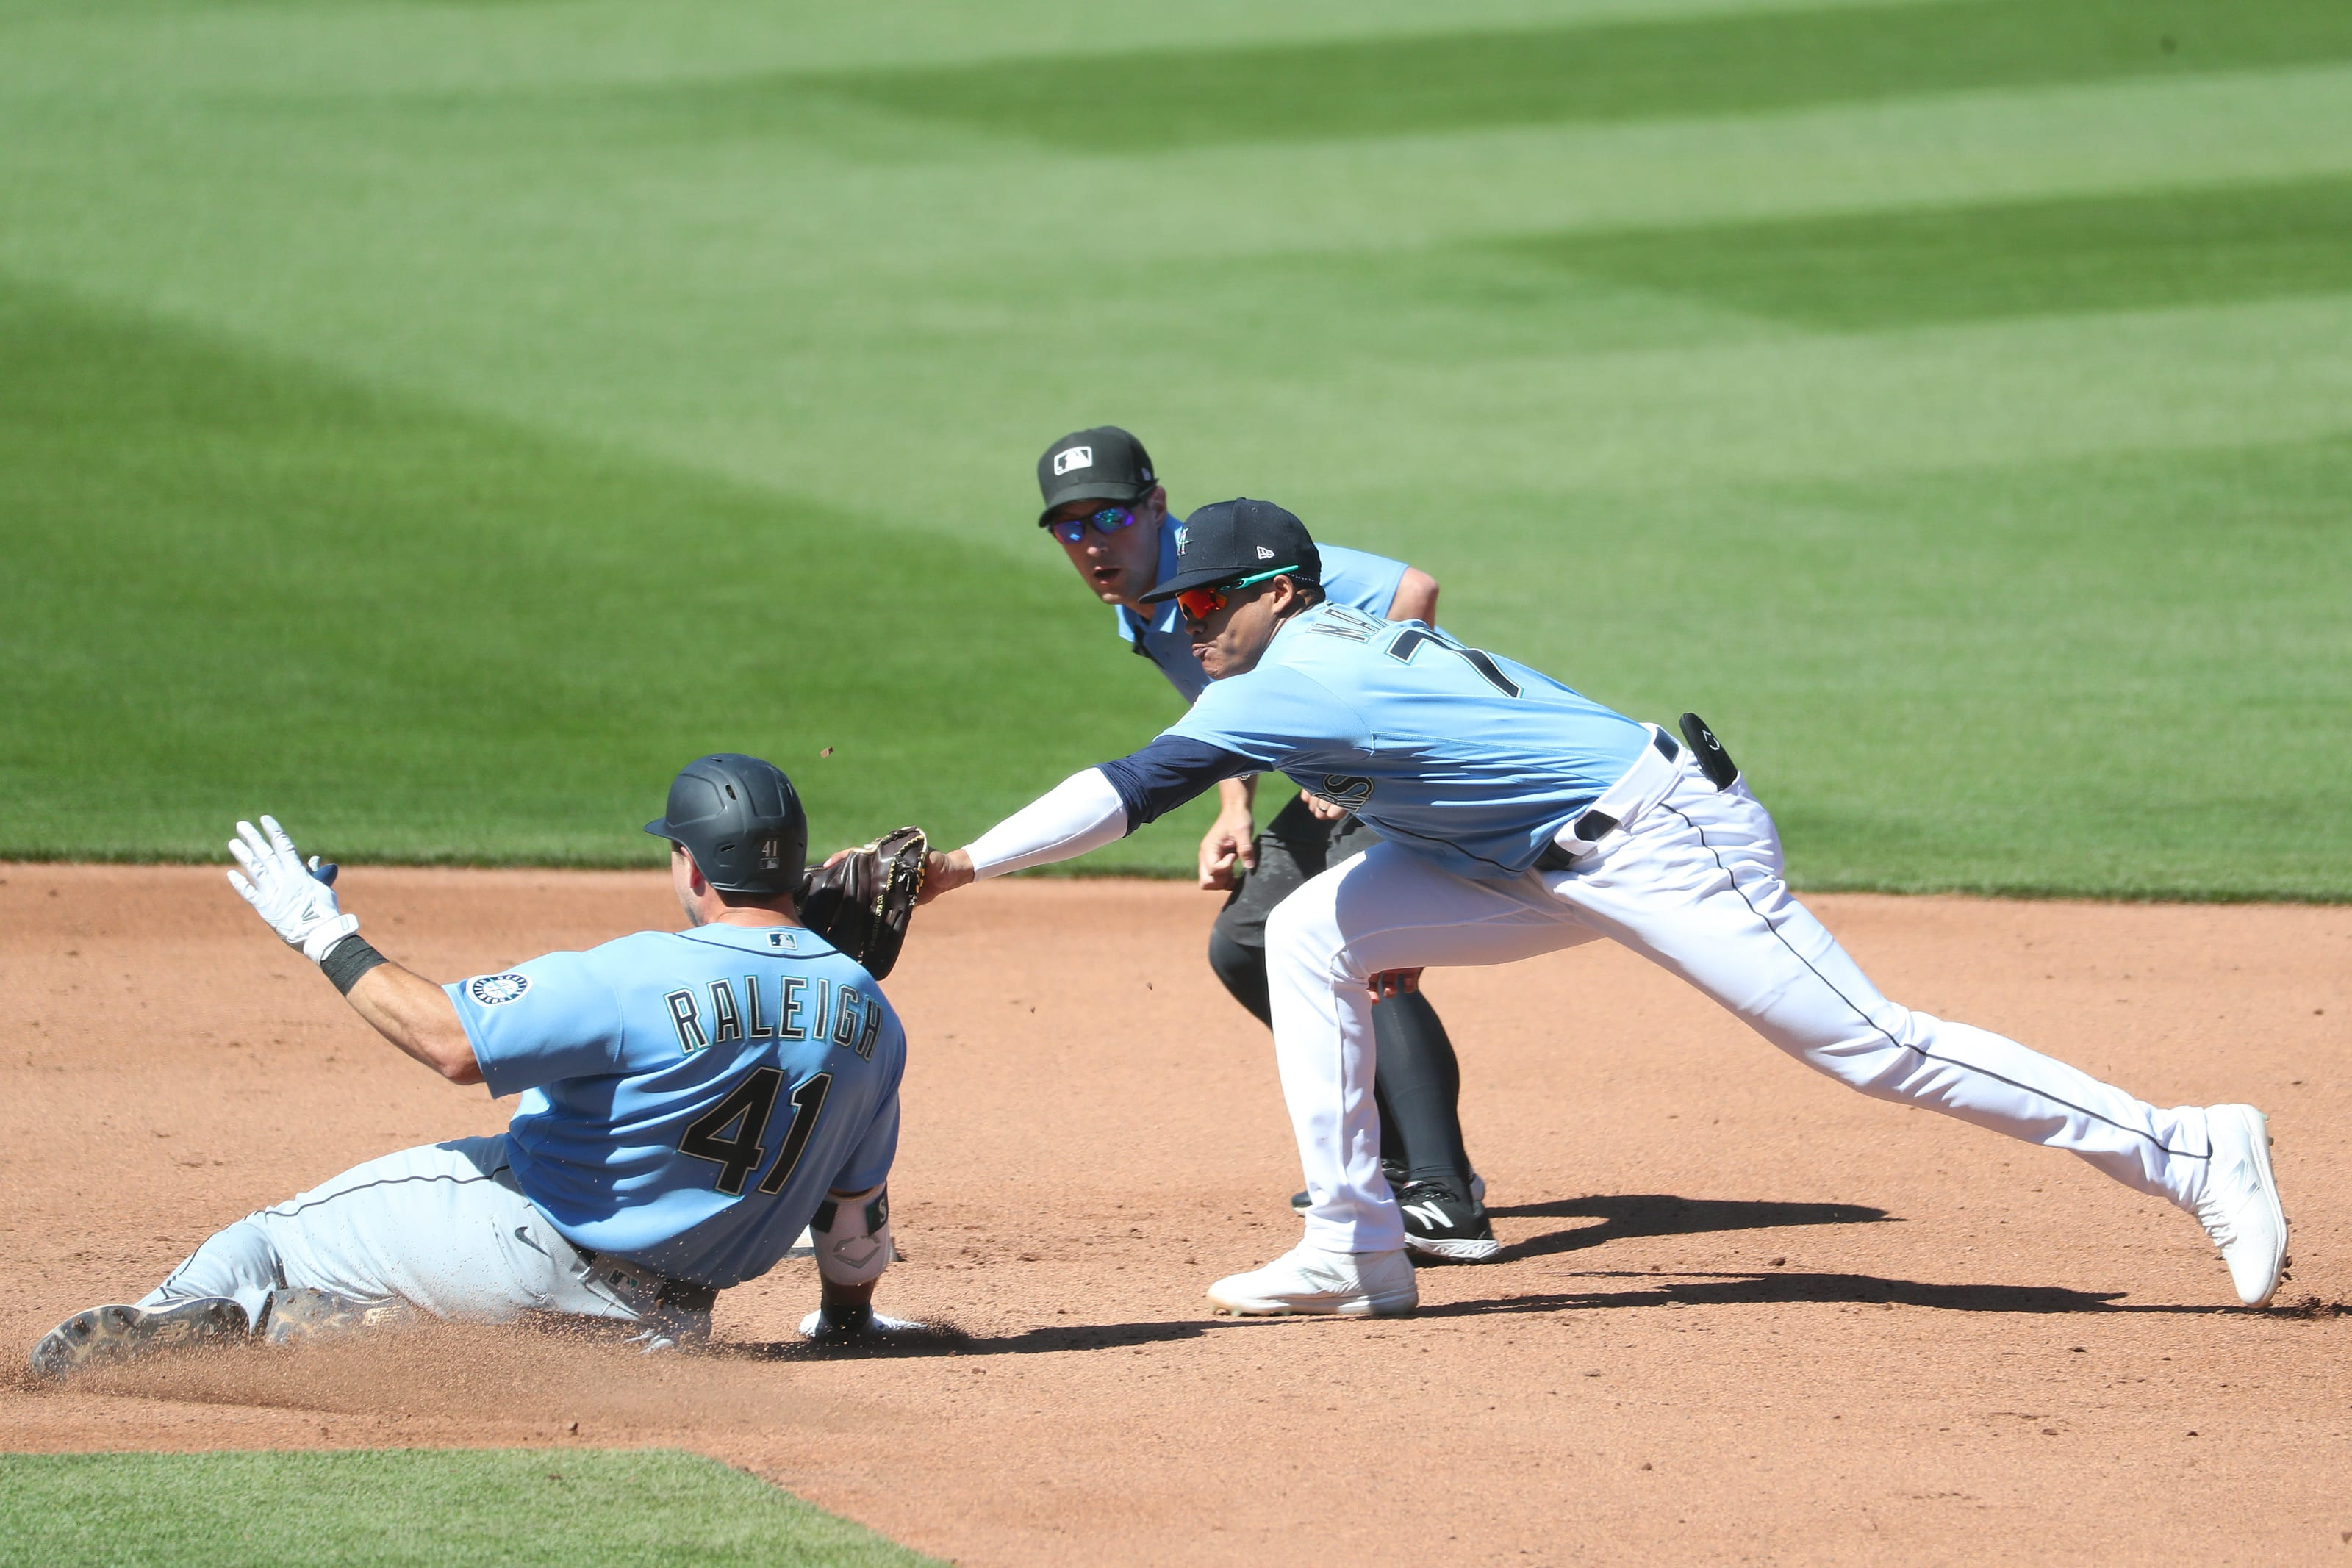 Cal Raleigh is tagged out by Noelvi Marte. Both were playing in Seattle Mariners Instructional League.